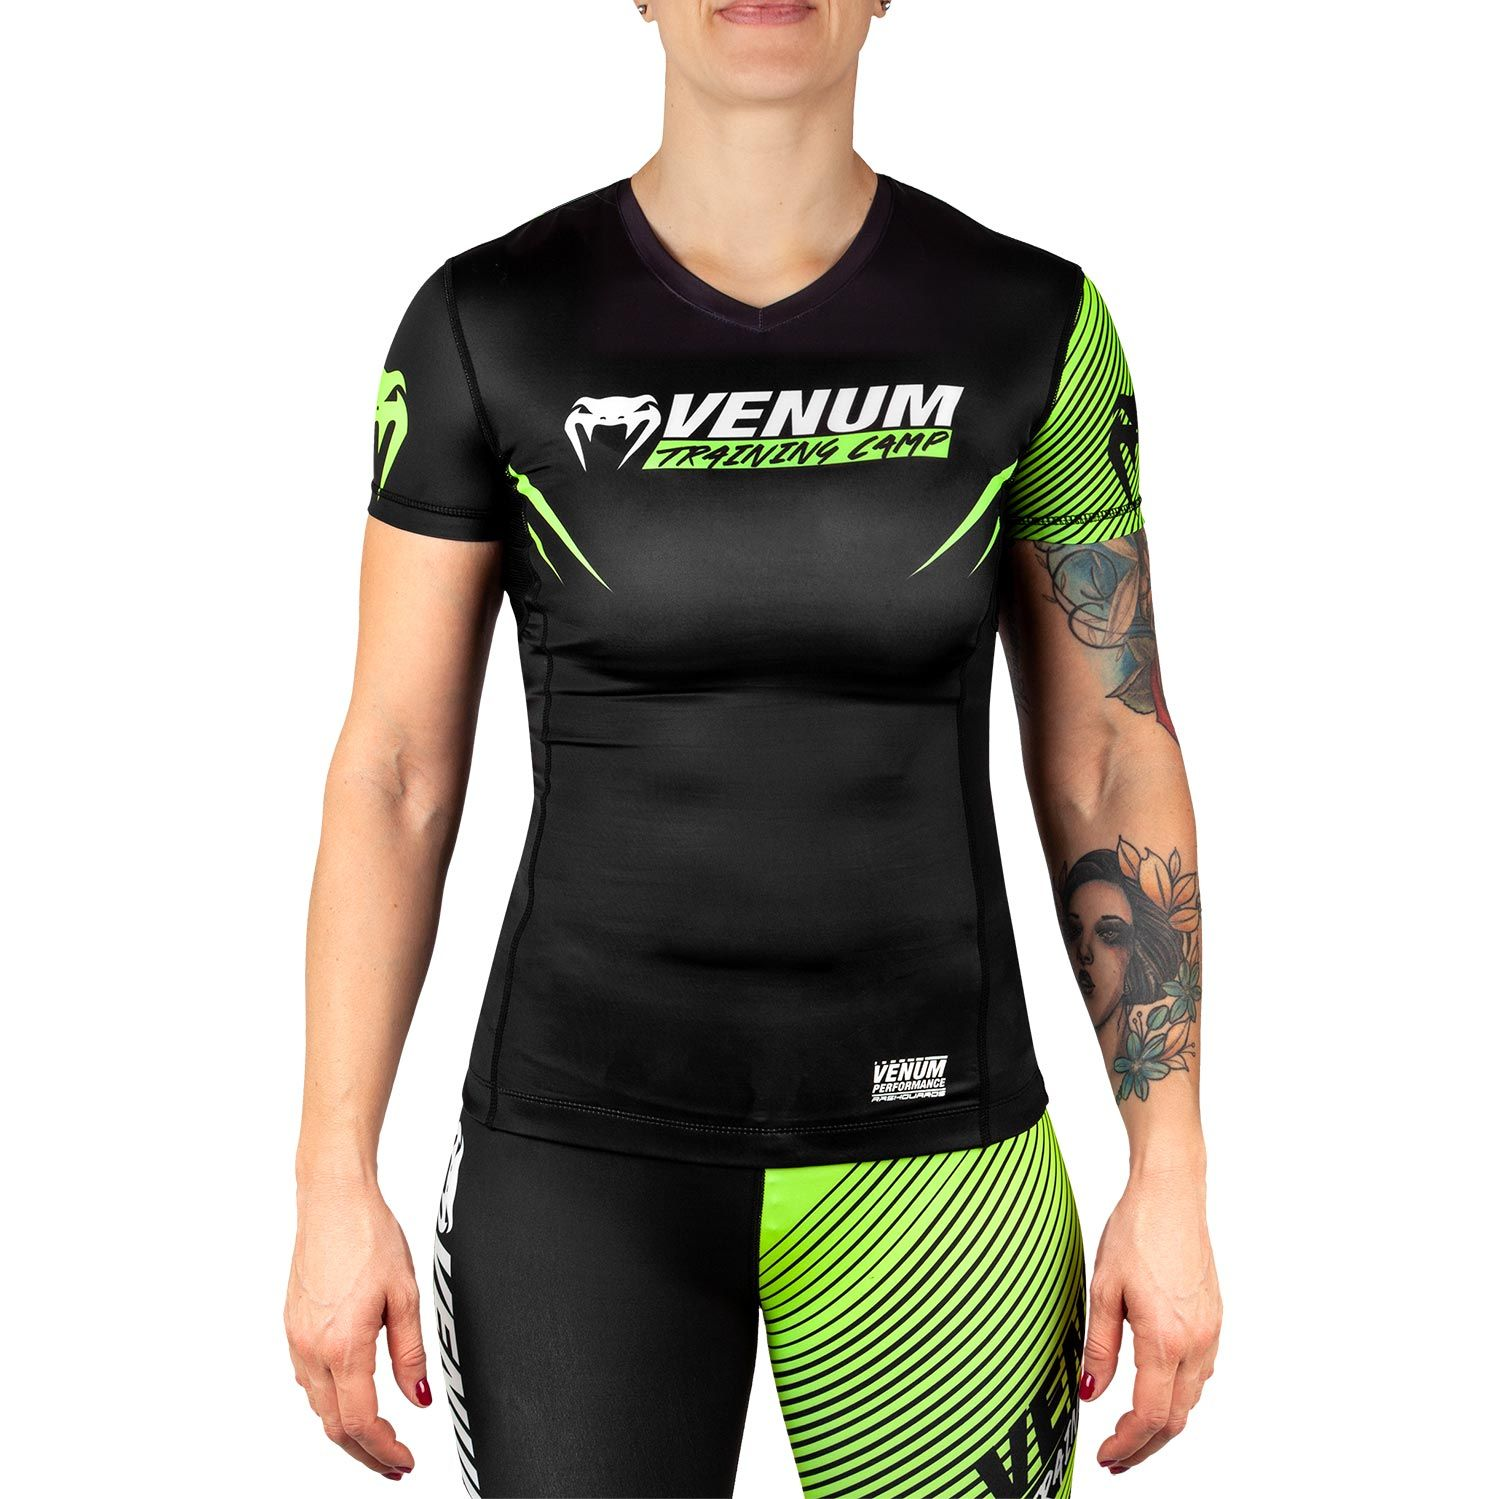 VENUM TRAINING CAMP 2.0 Rövid ujjú rashguard